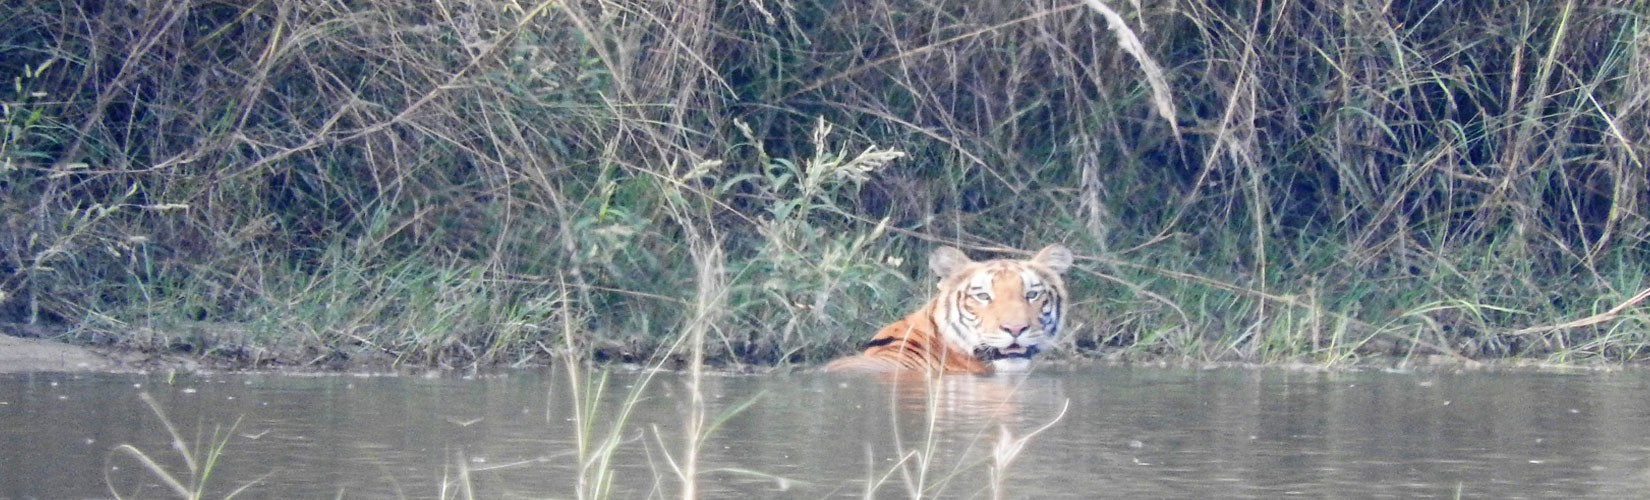 Royal Bengal Tiger in Bardiya nation park